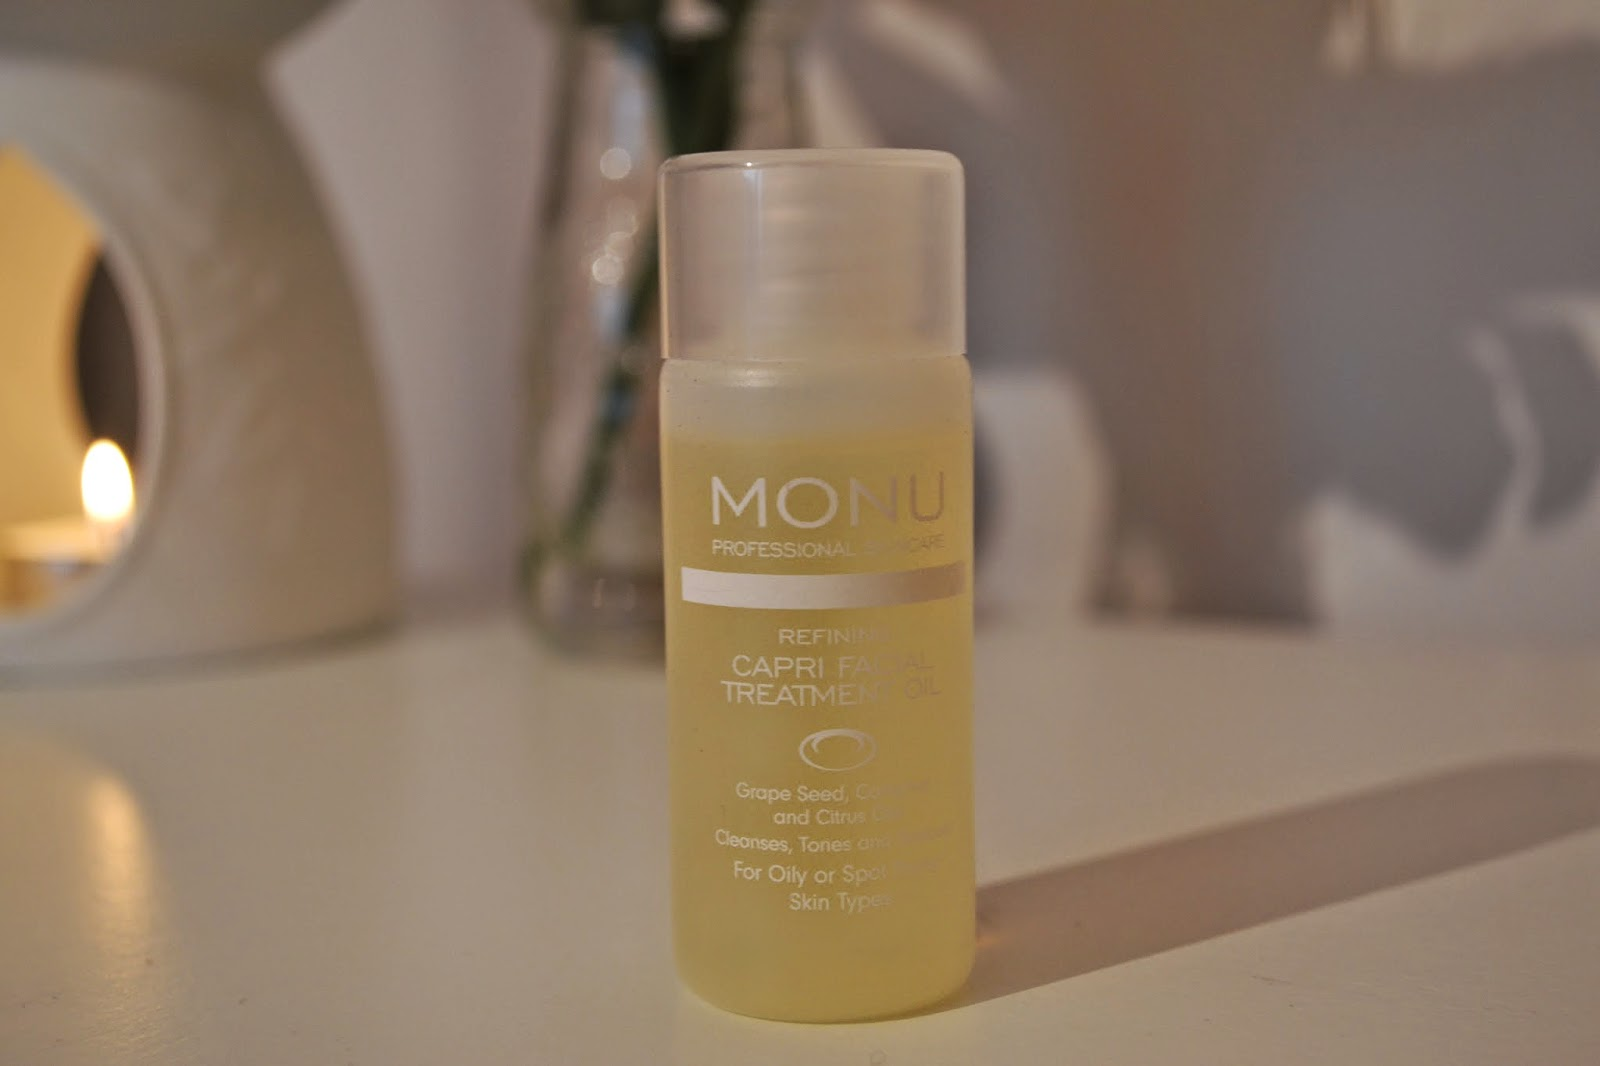 Monu Facial Oil